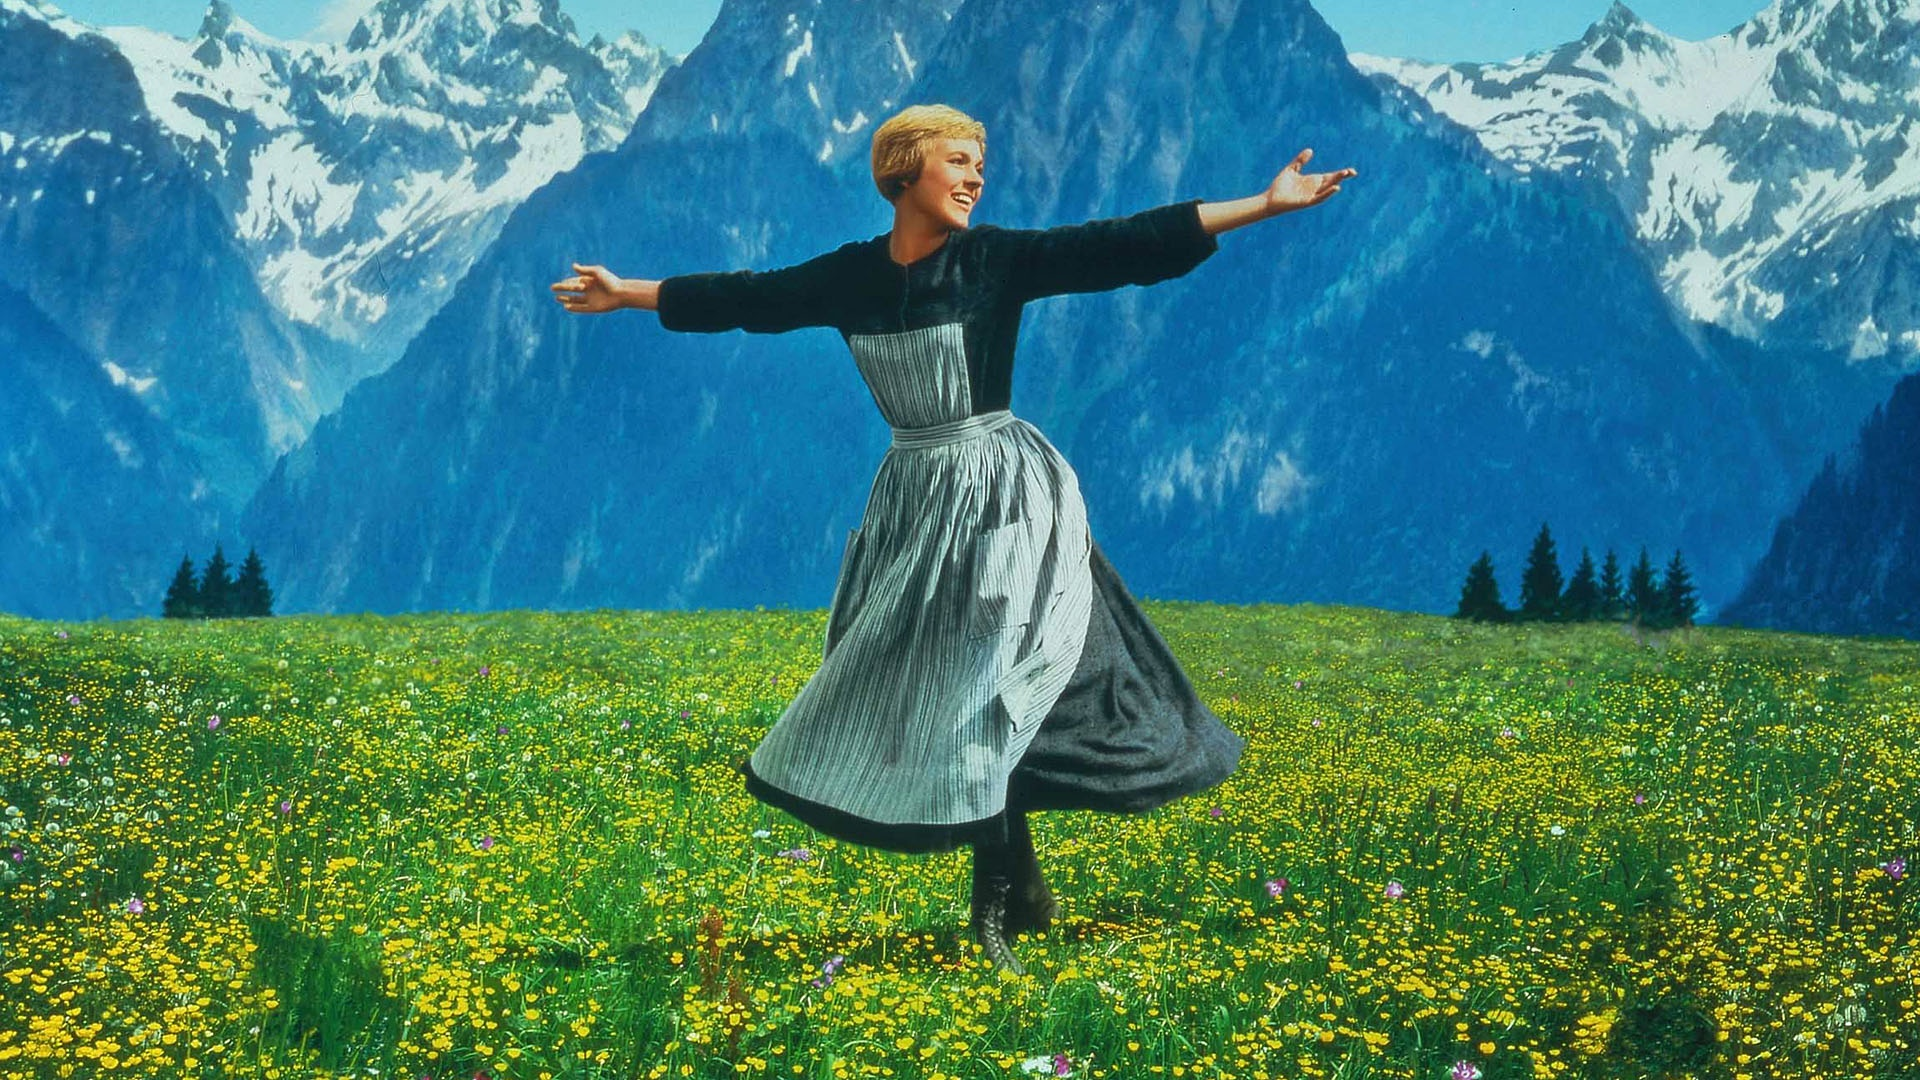 the-sound-of-music-1920x1080-2